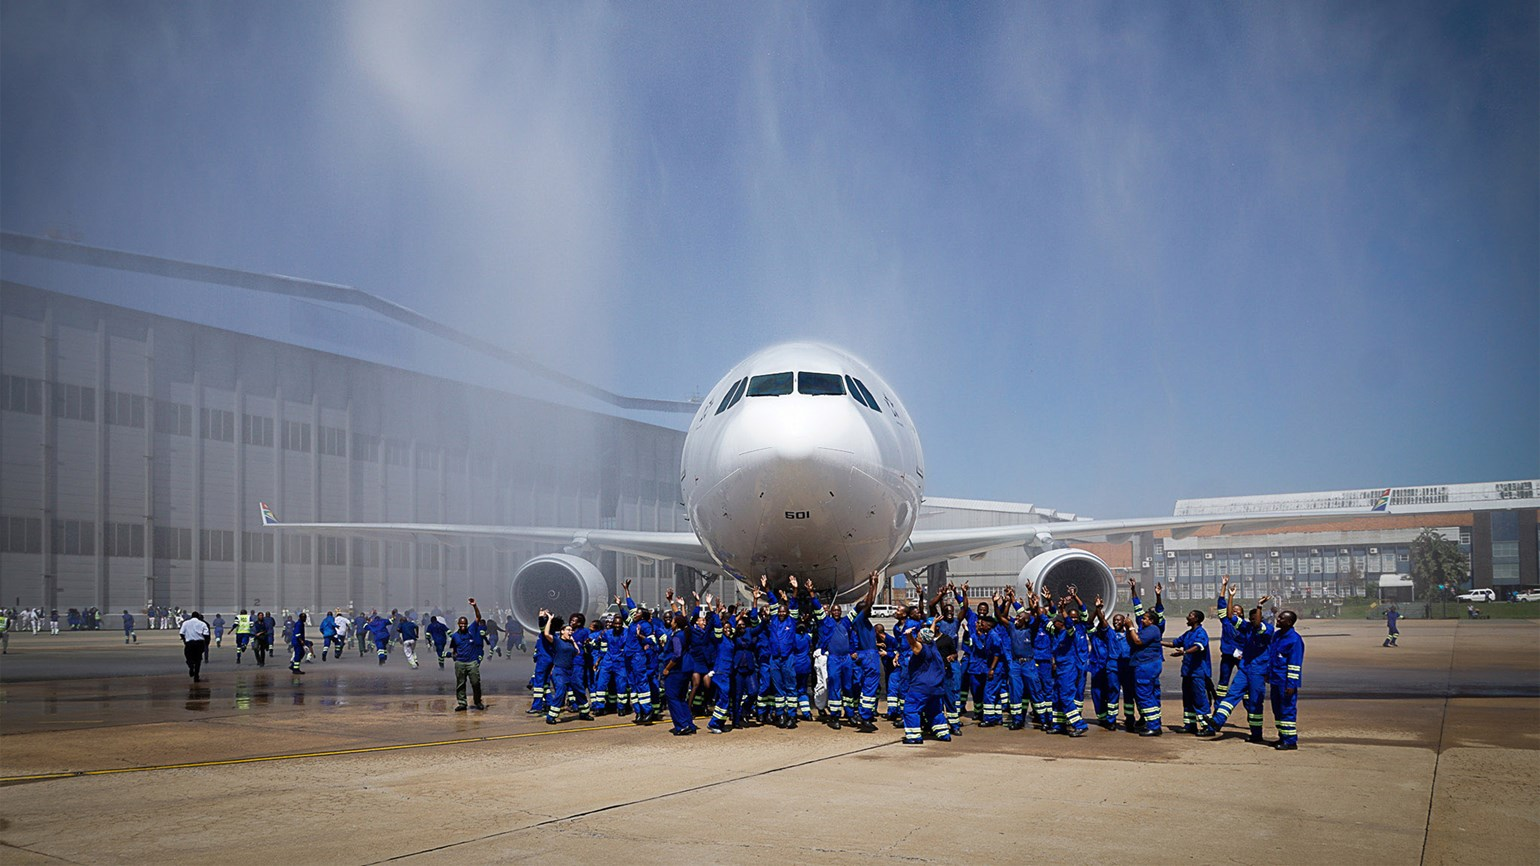 South African Air deploys A330-300 on D.C. flights